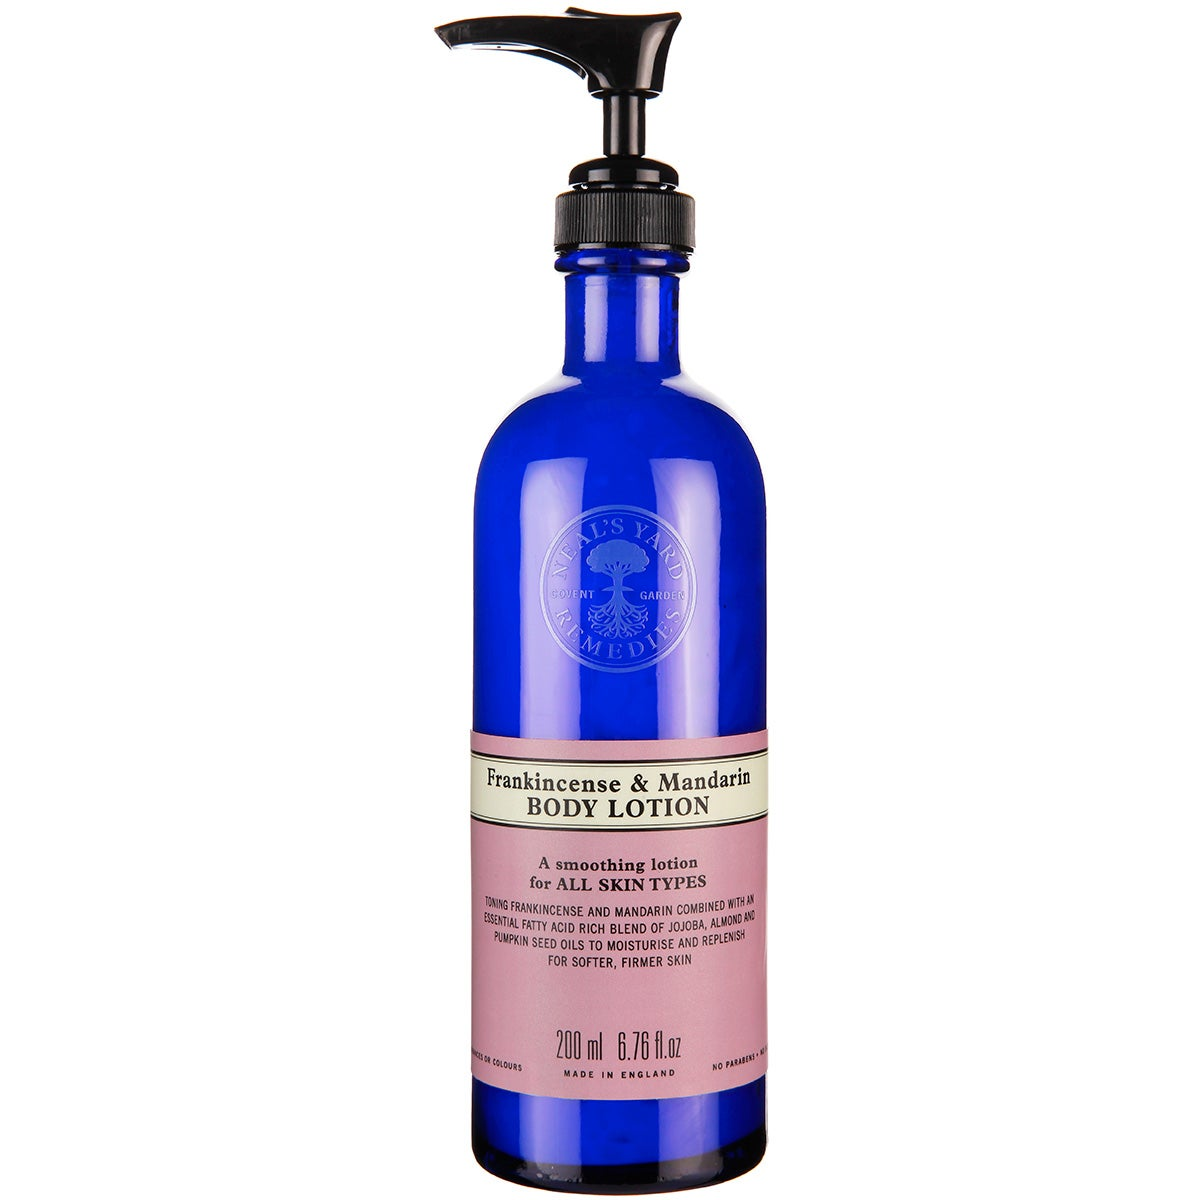 Neal's Yard Remedies Frankincense & Mandarin Body Lotion